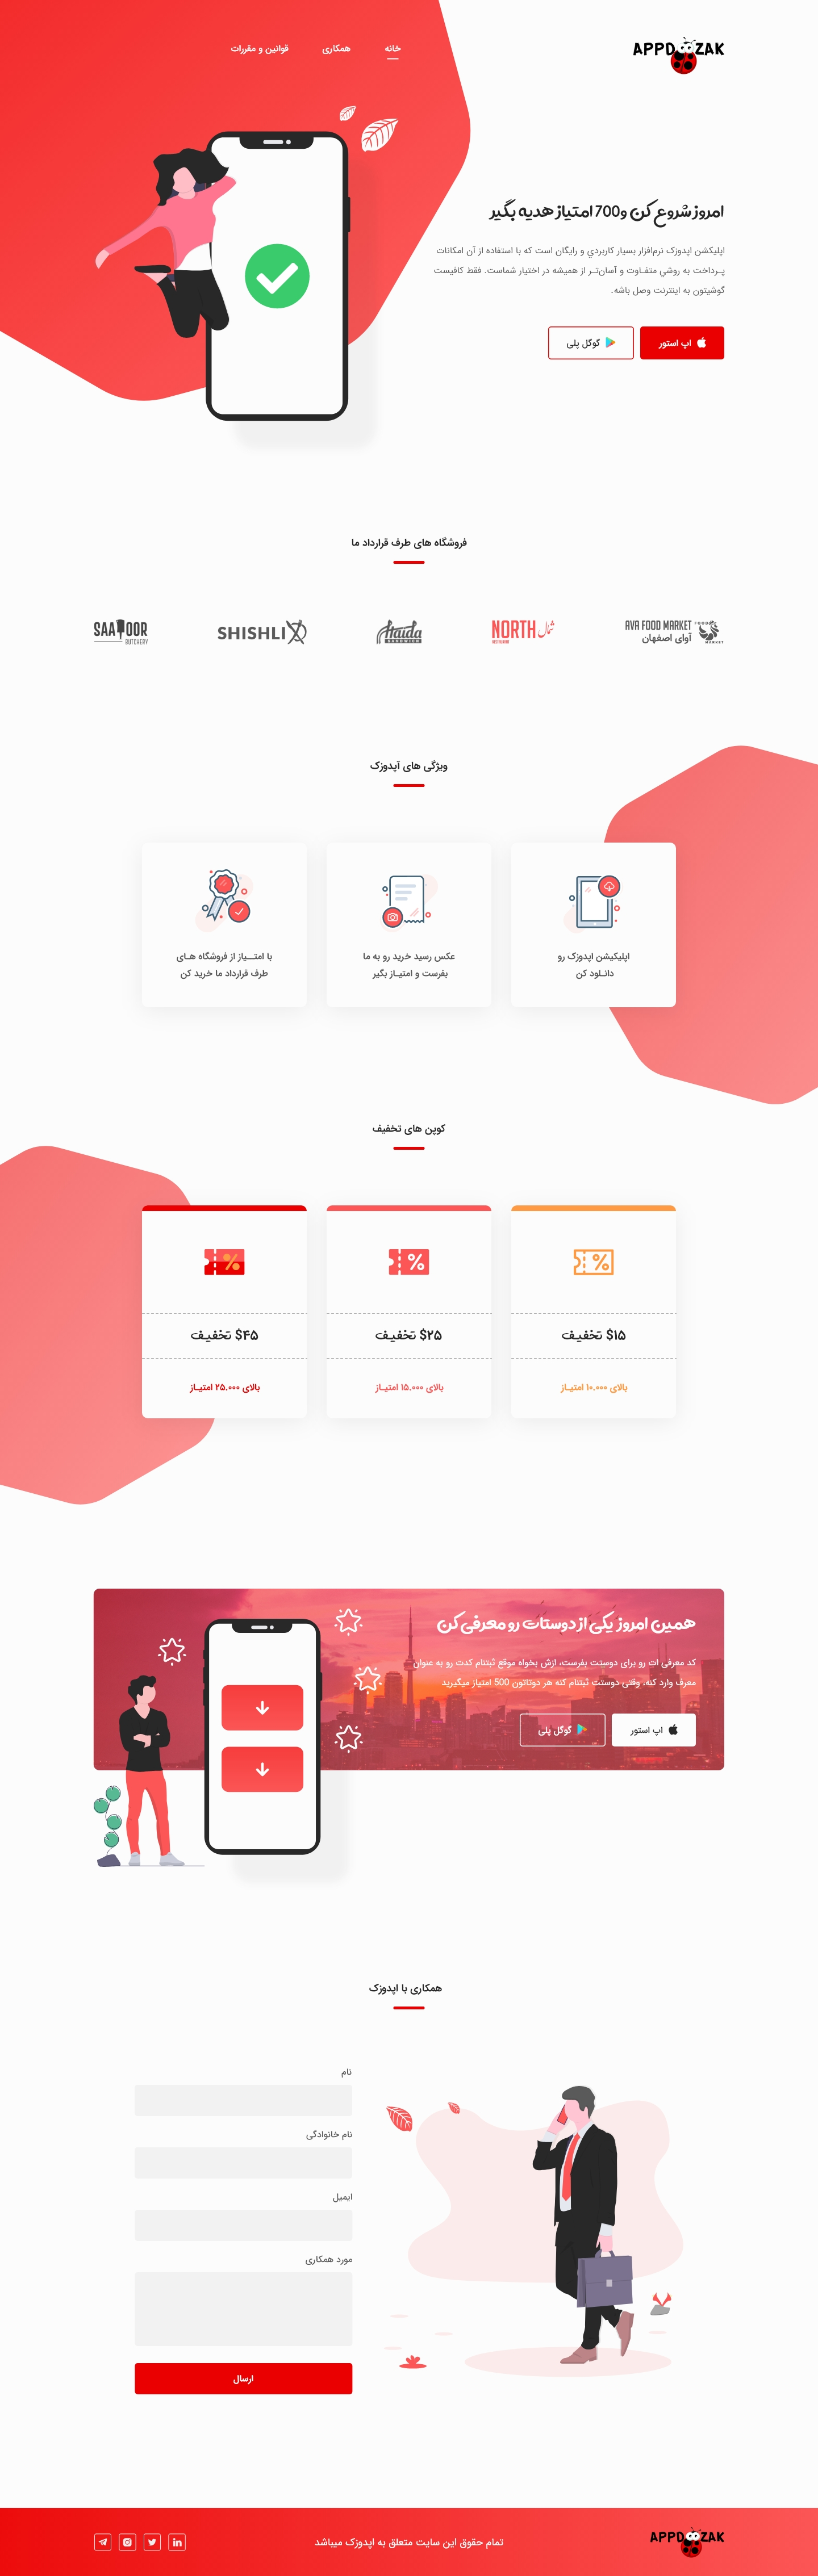 App Doozak responsive and mobile friendly landing page user interface